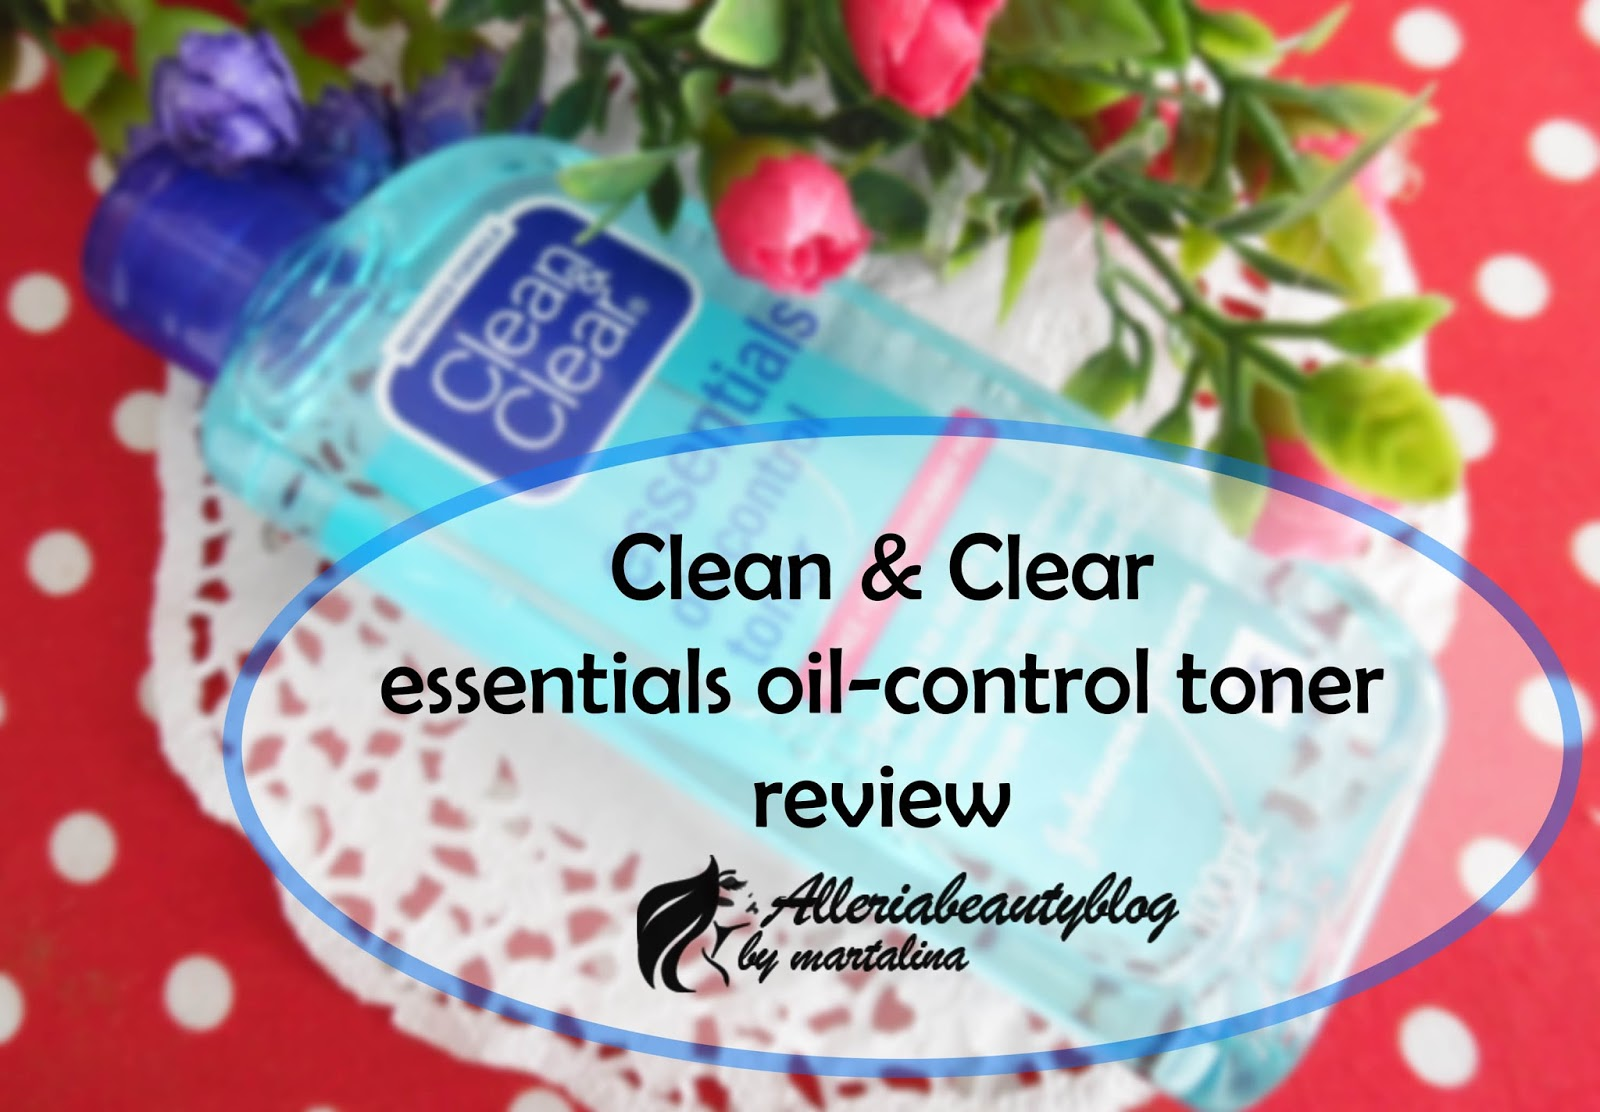 clean-and-clear-essentials-oil-control-toner-review.jpg